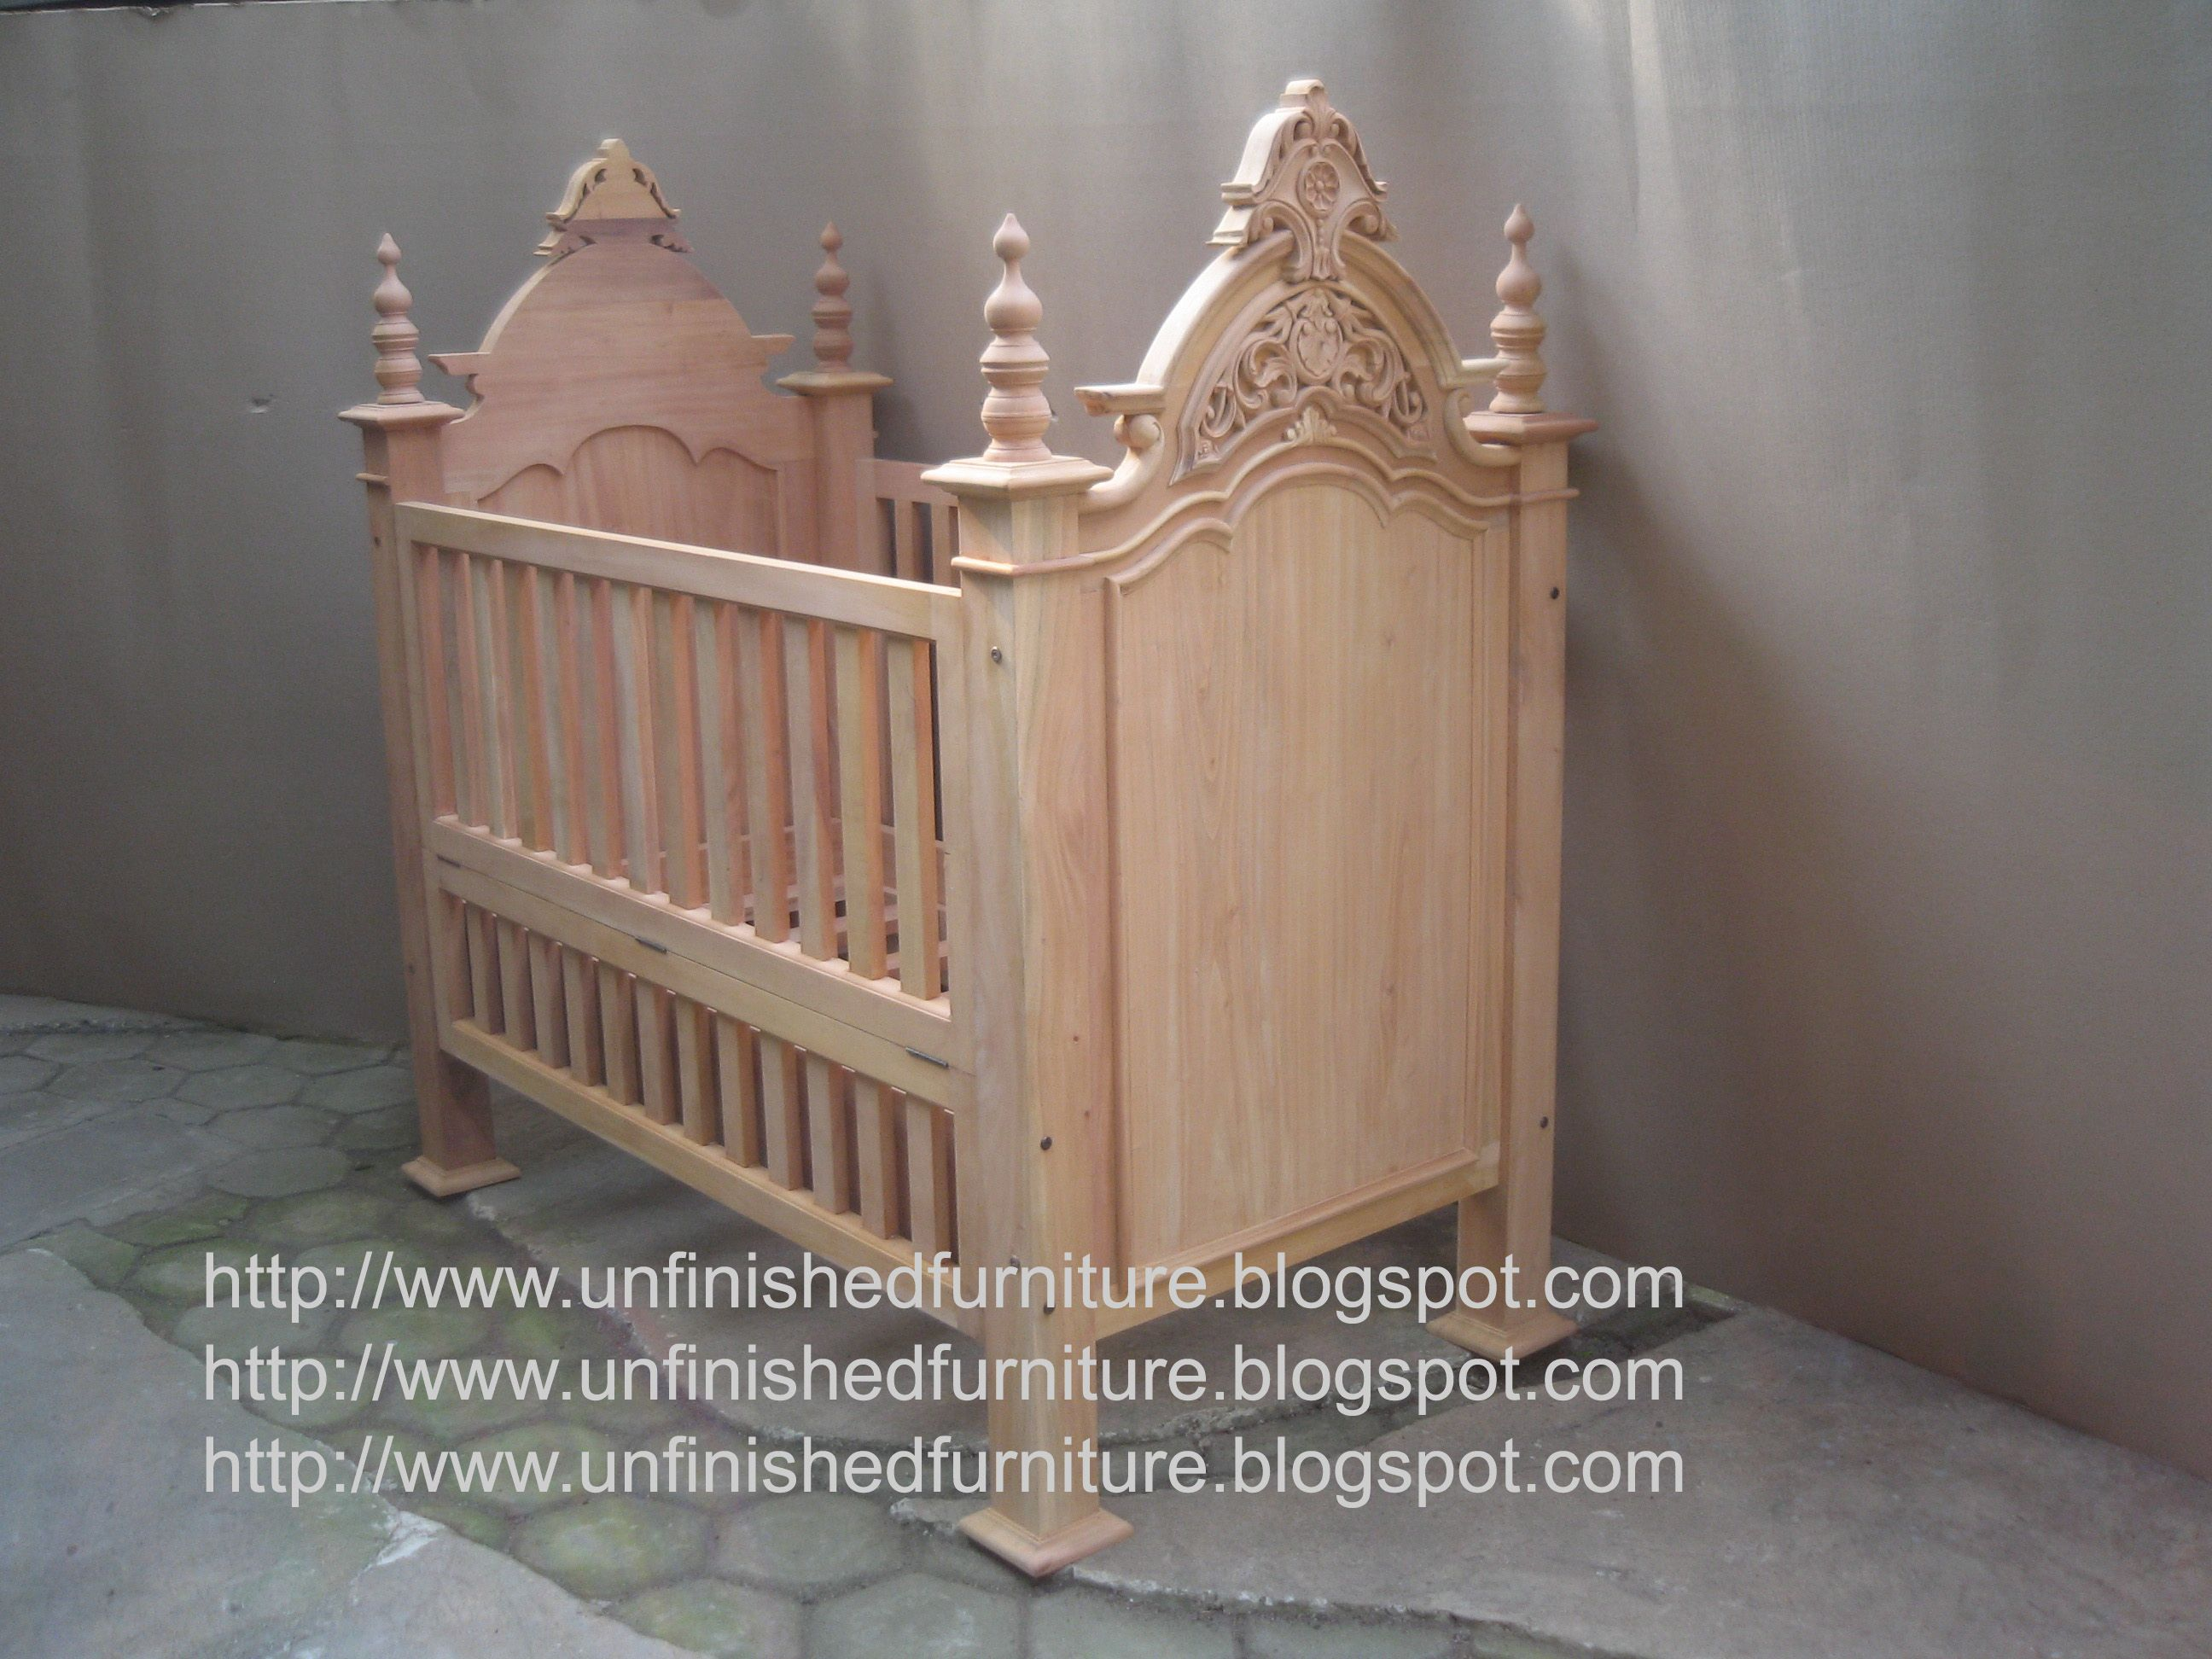 the doing all depth to up crib monogram def pin large cribs letters hanging unfinished wood above this